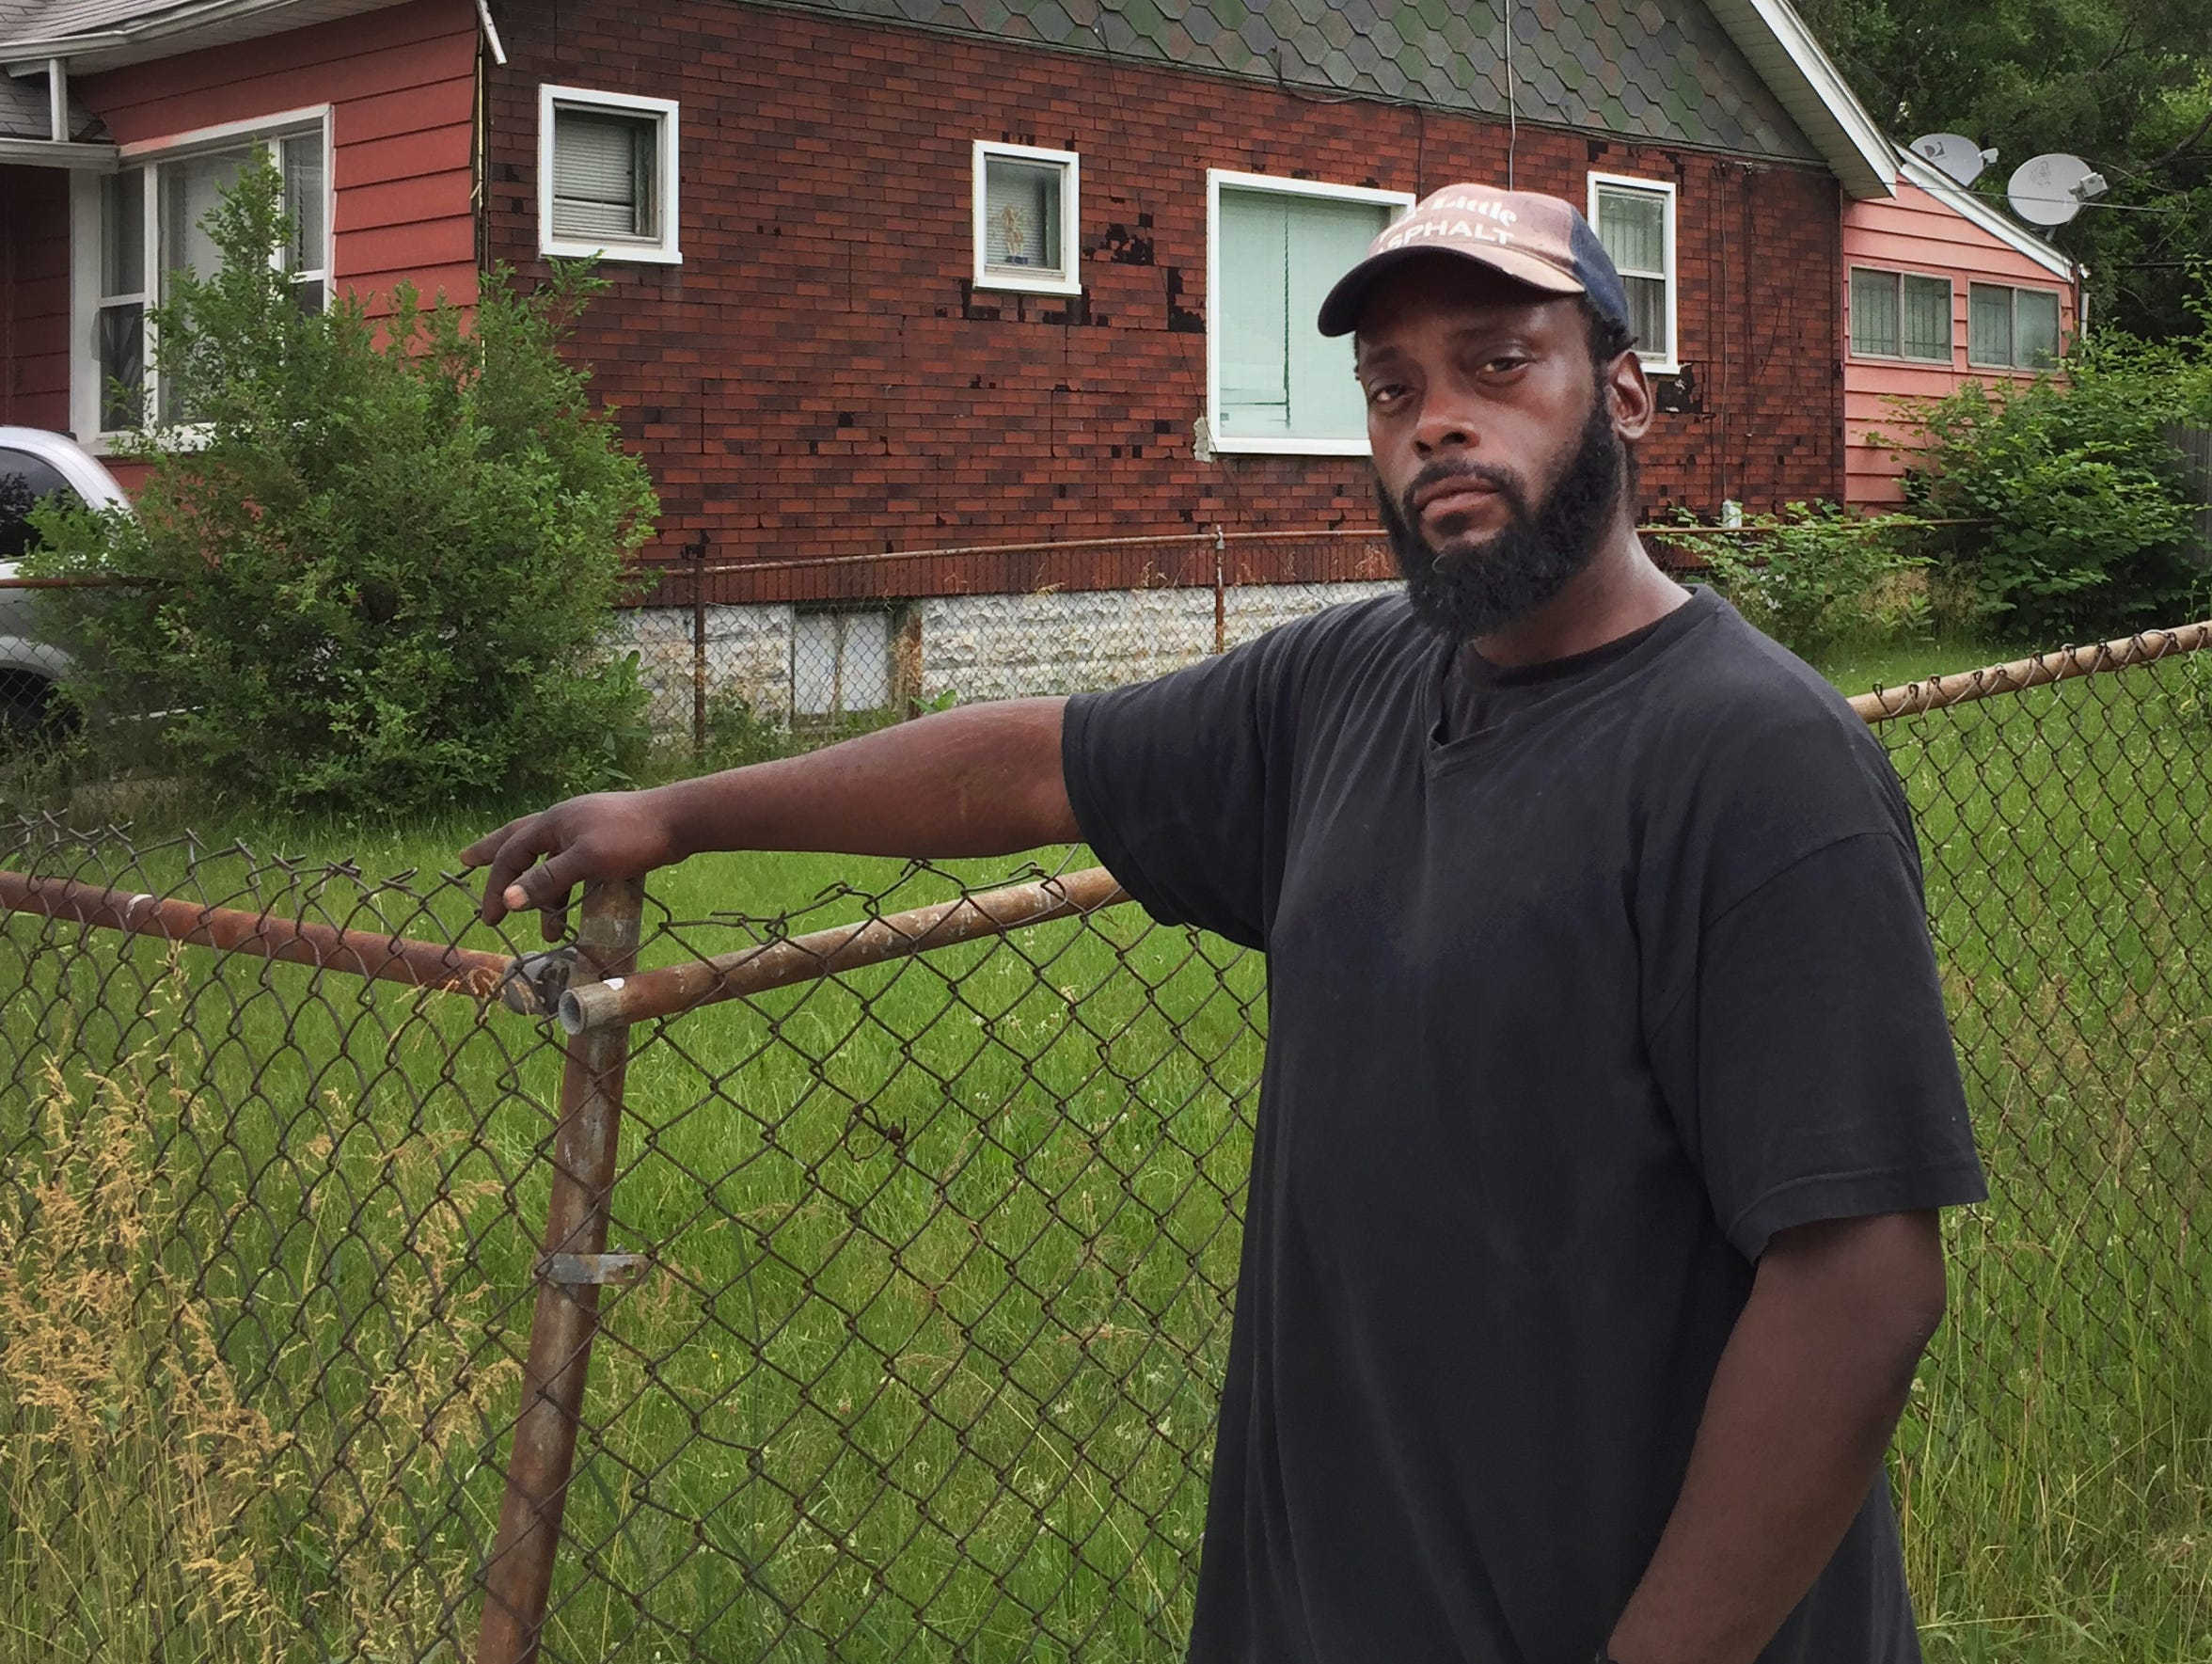 Jamon Blue, 38, a Fitzgerald neighborhood resident, poses in June for a portrait on Prairie Street.